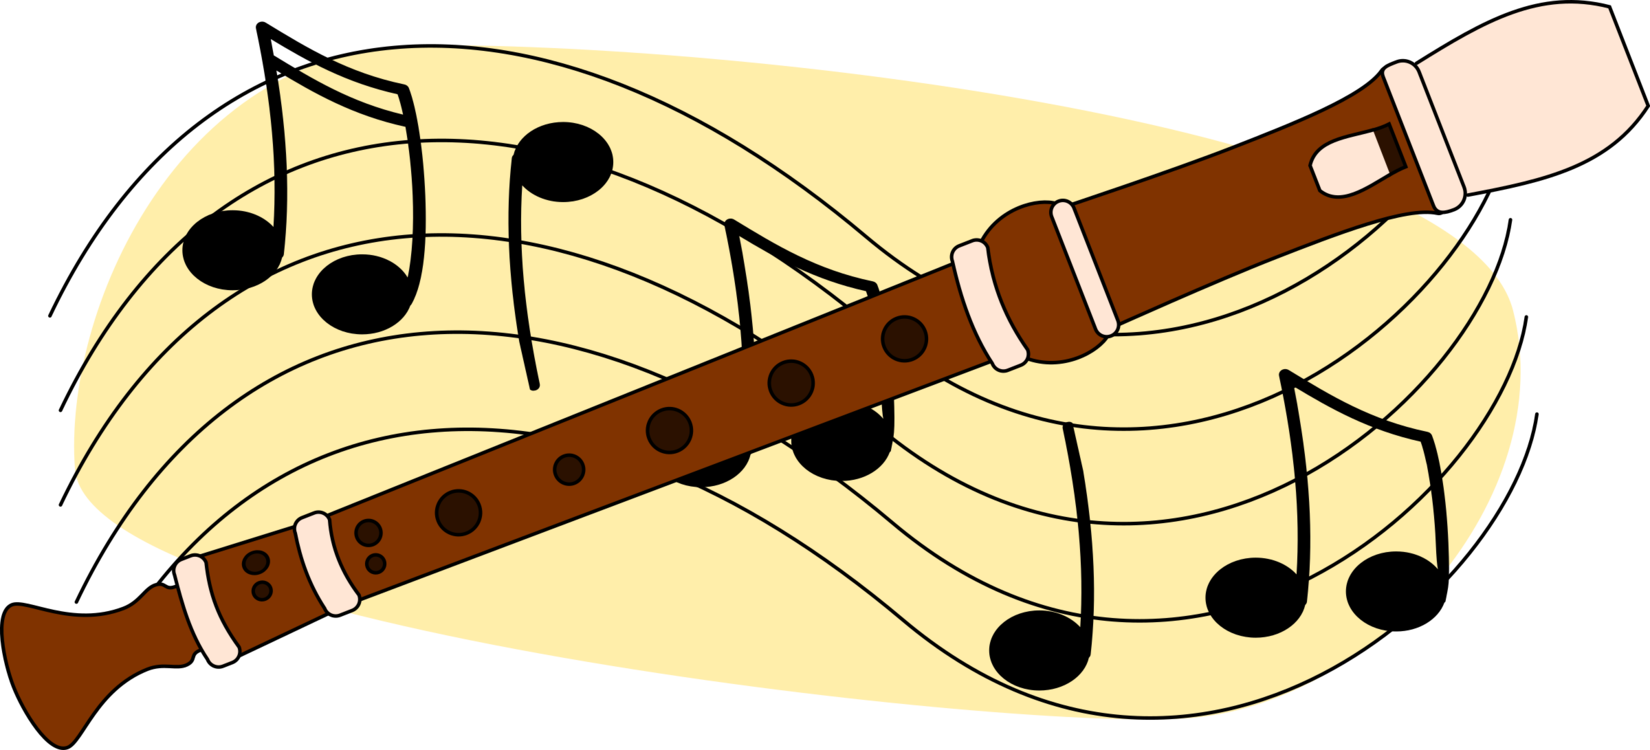 Instruments clipart popular. Free instrument download clip